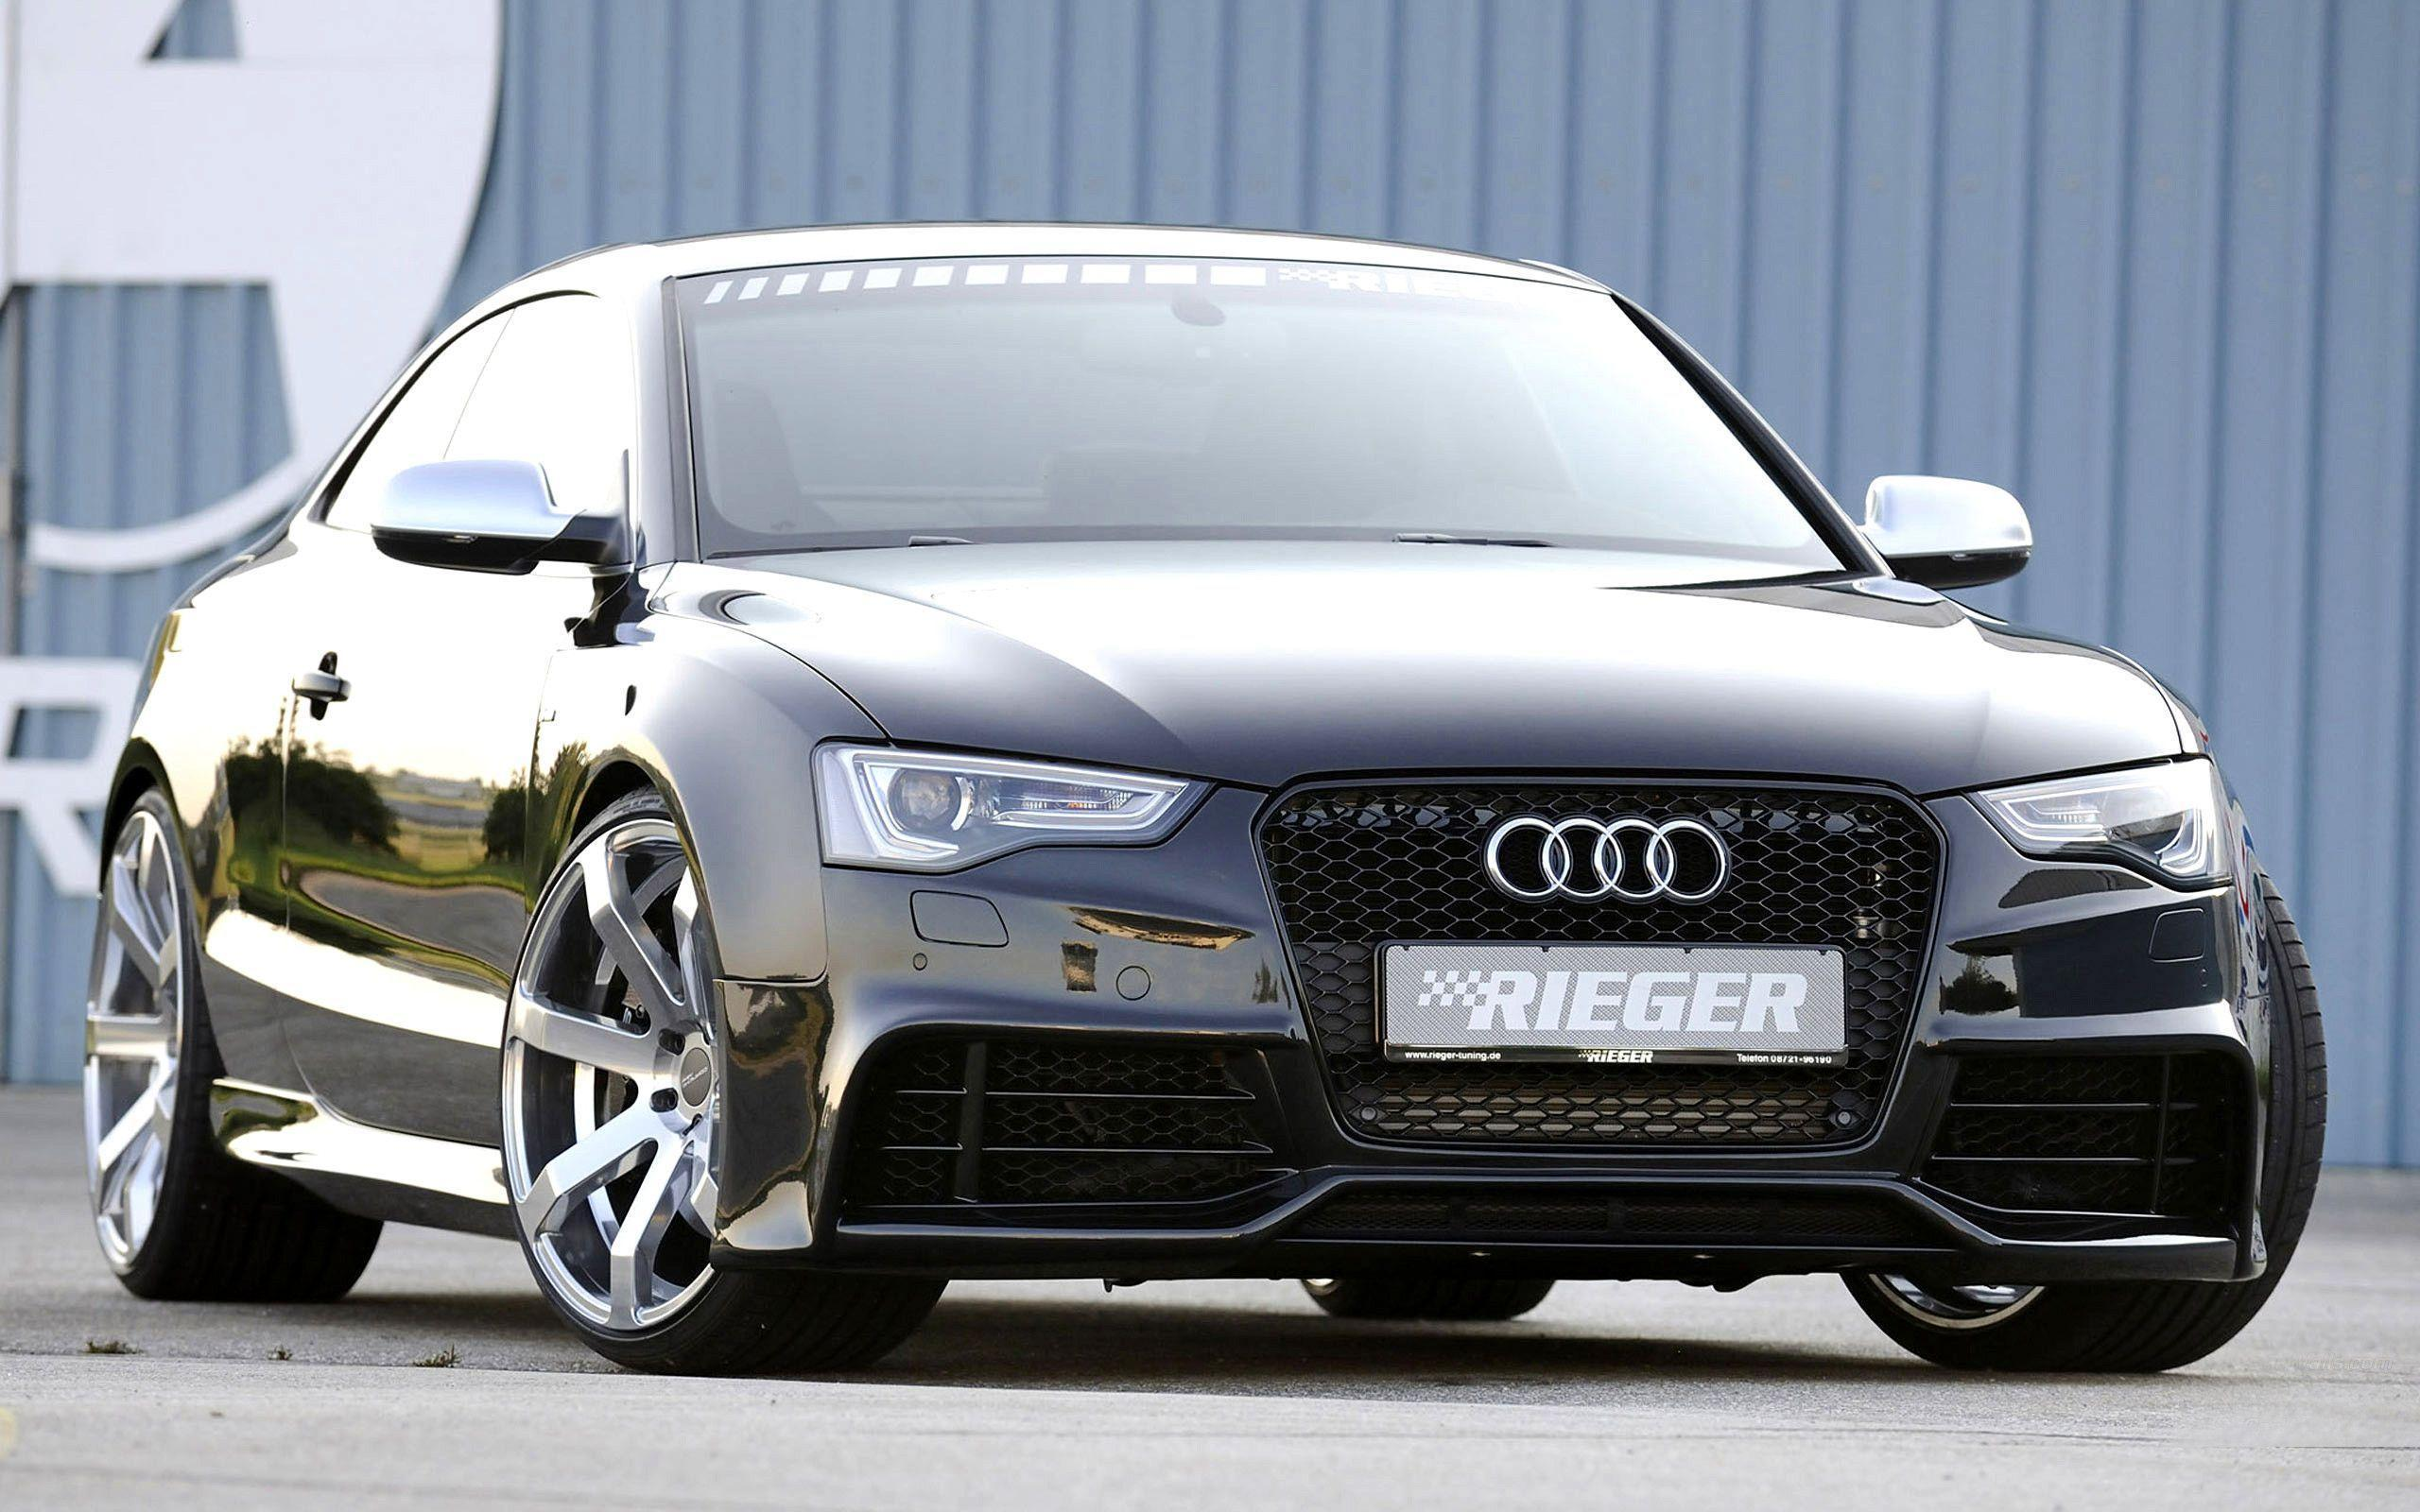 2012 Audi A5 Rieger Wallpapers